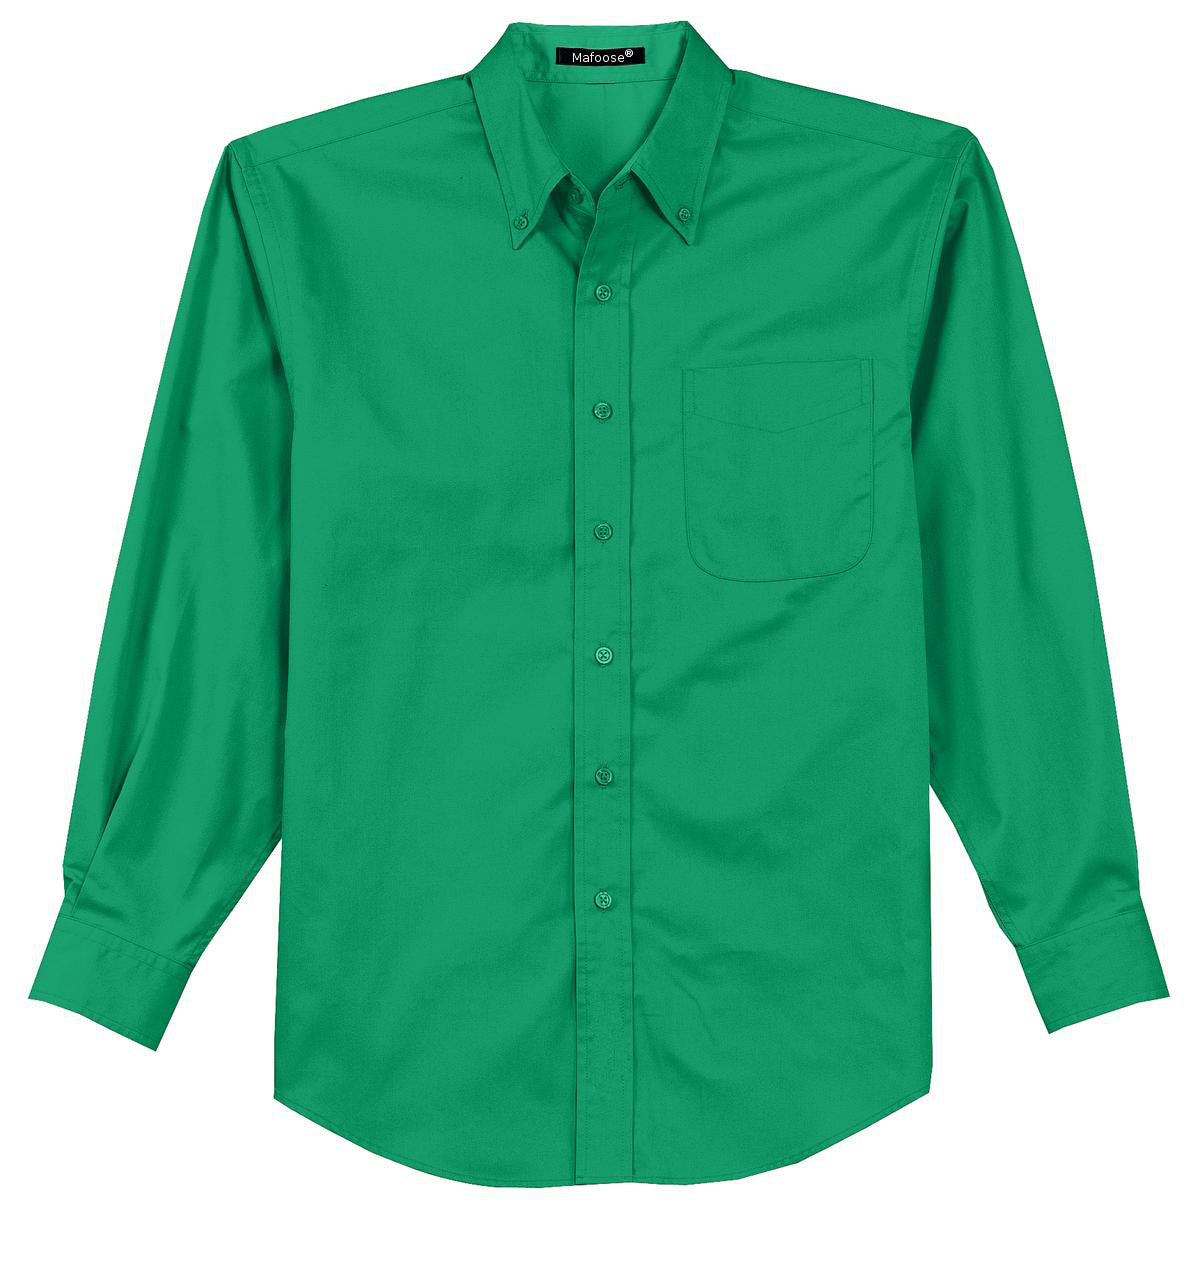 Mafoose Men's Tall Long Sleeve Easy Care Shirt Court Green-Front